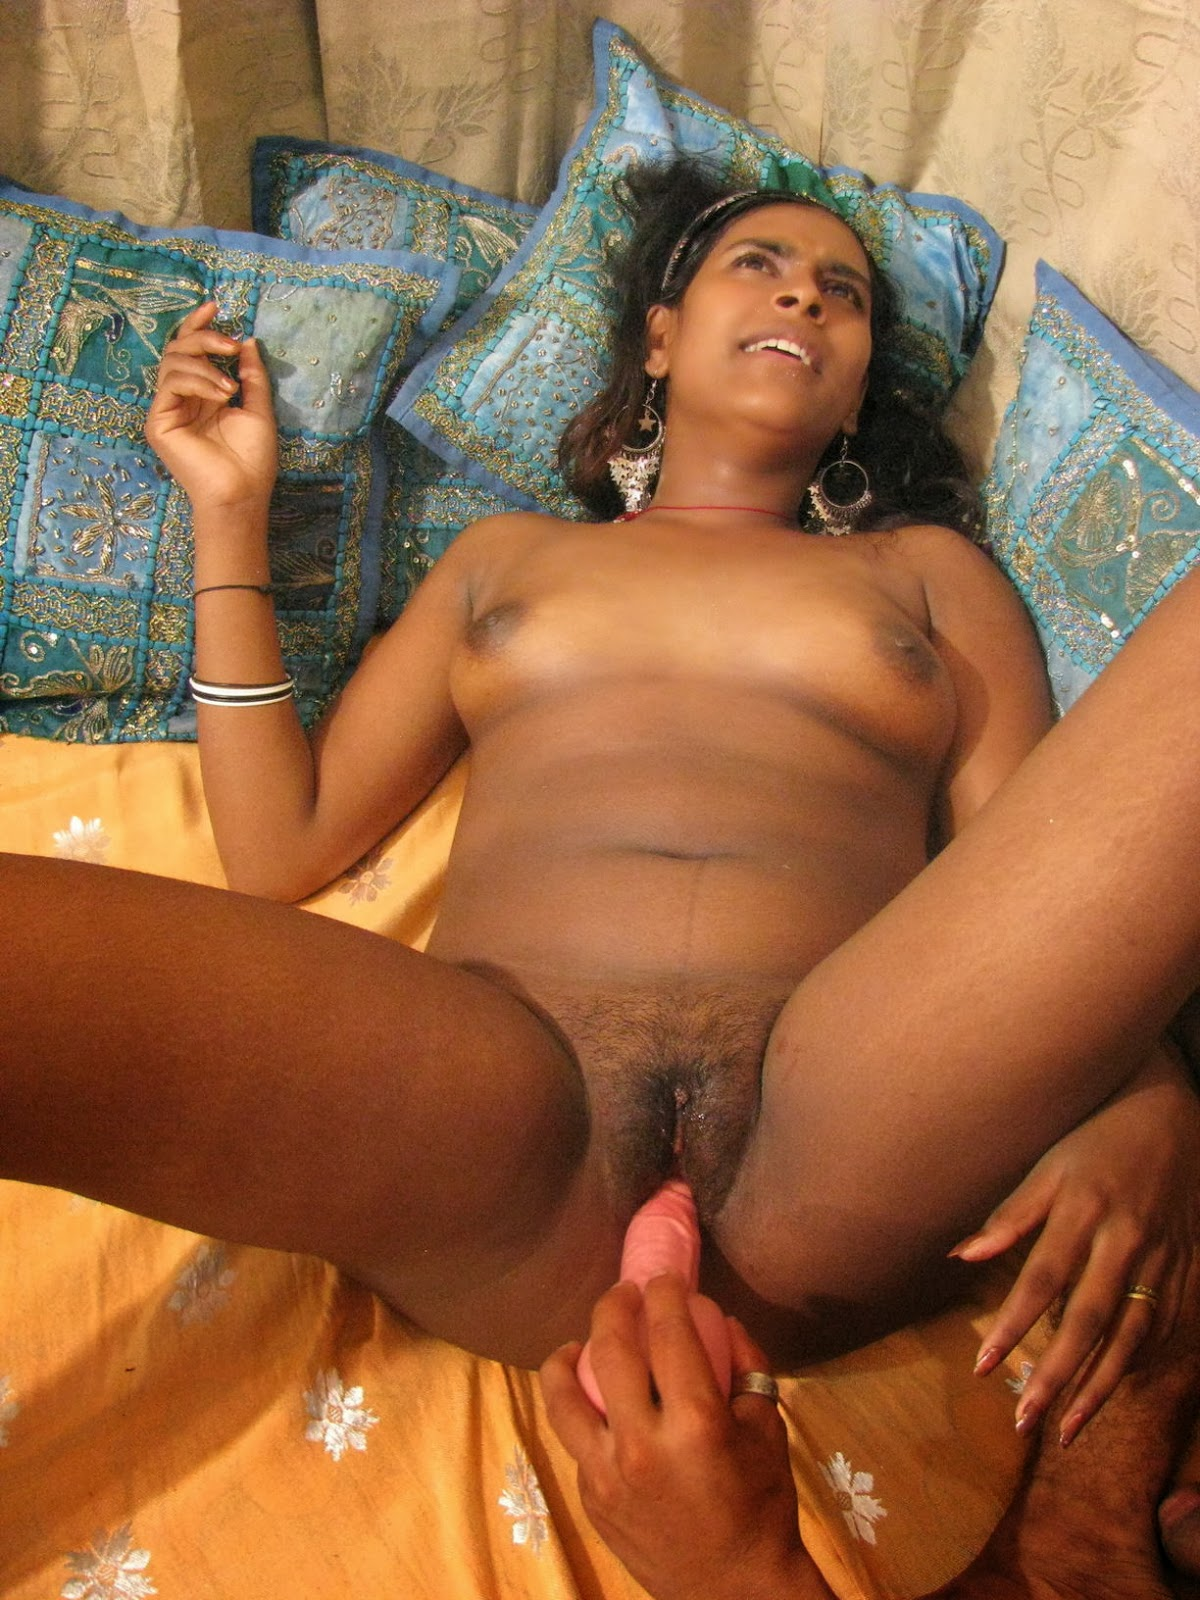 Free indian porn images hd fucks gallery